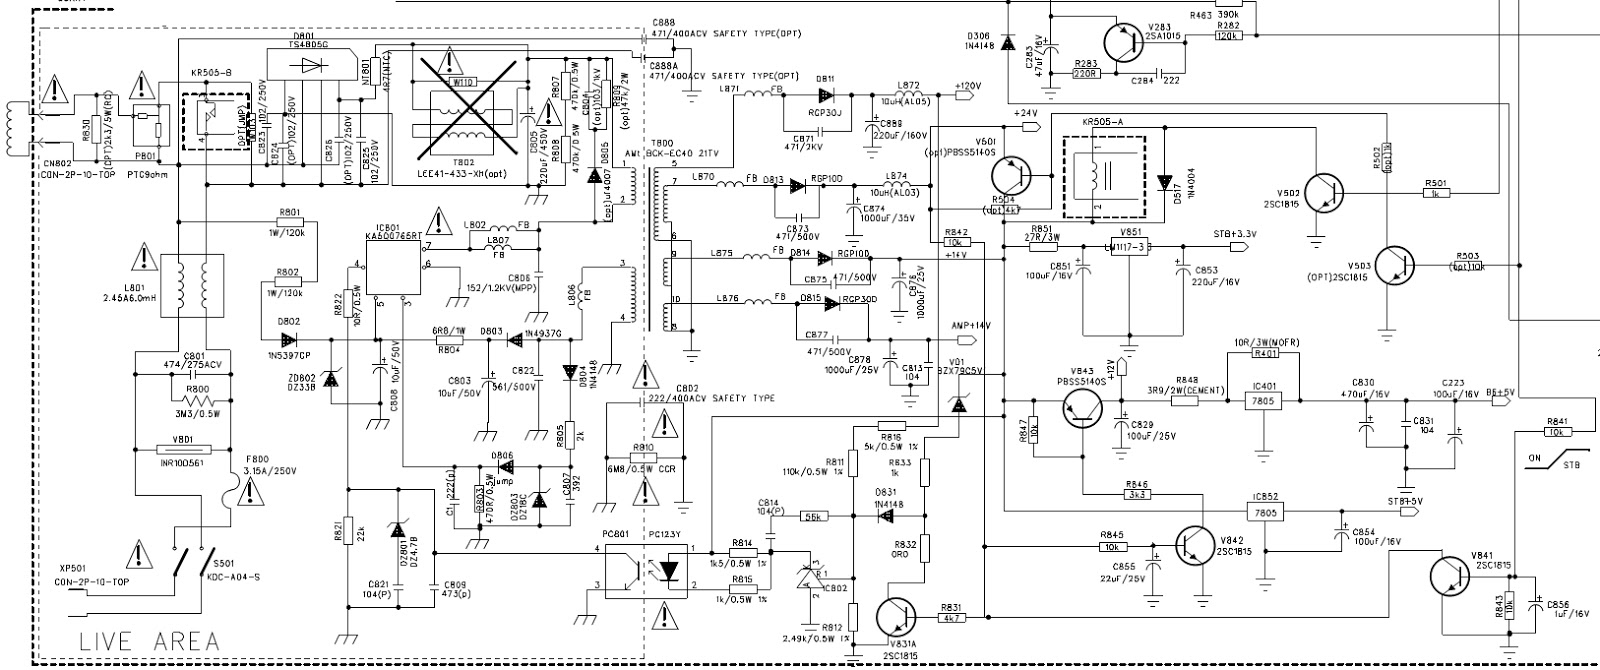 Click On Schematic To Zoom In